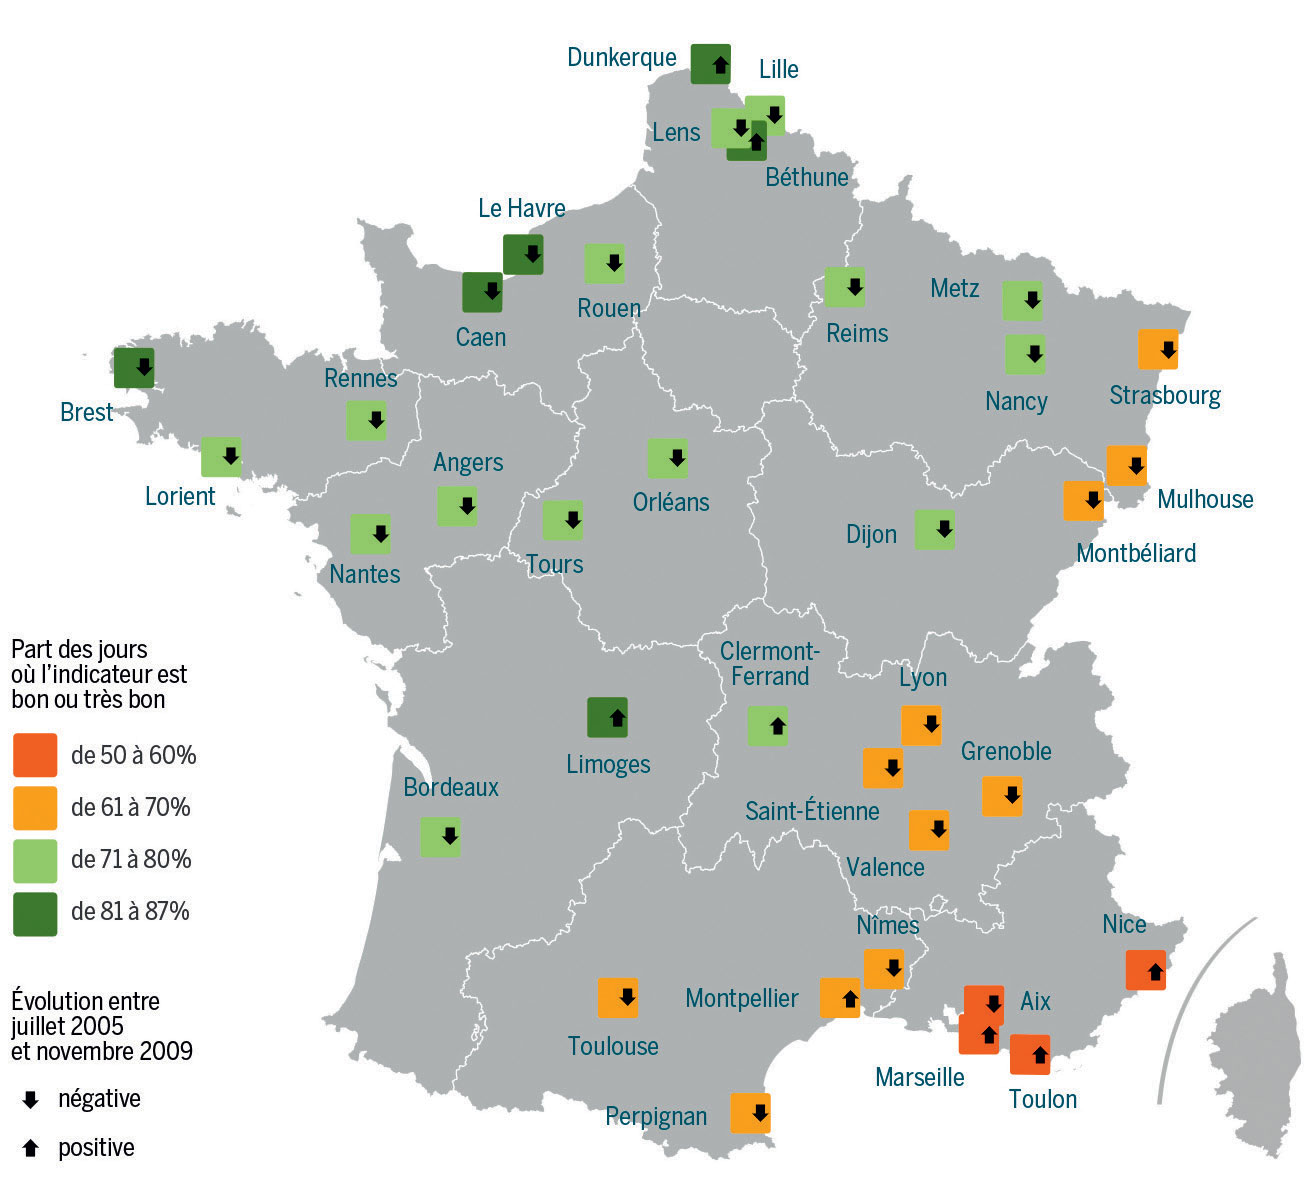 Qualité de l'air, indice ATMO. Source : Observ'agglo, p.47